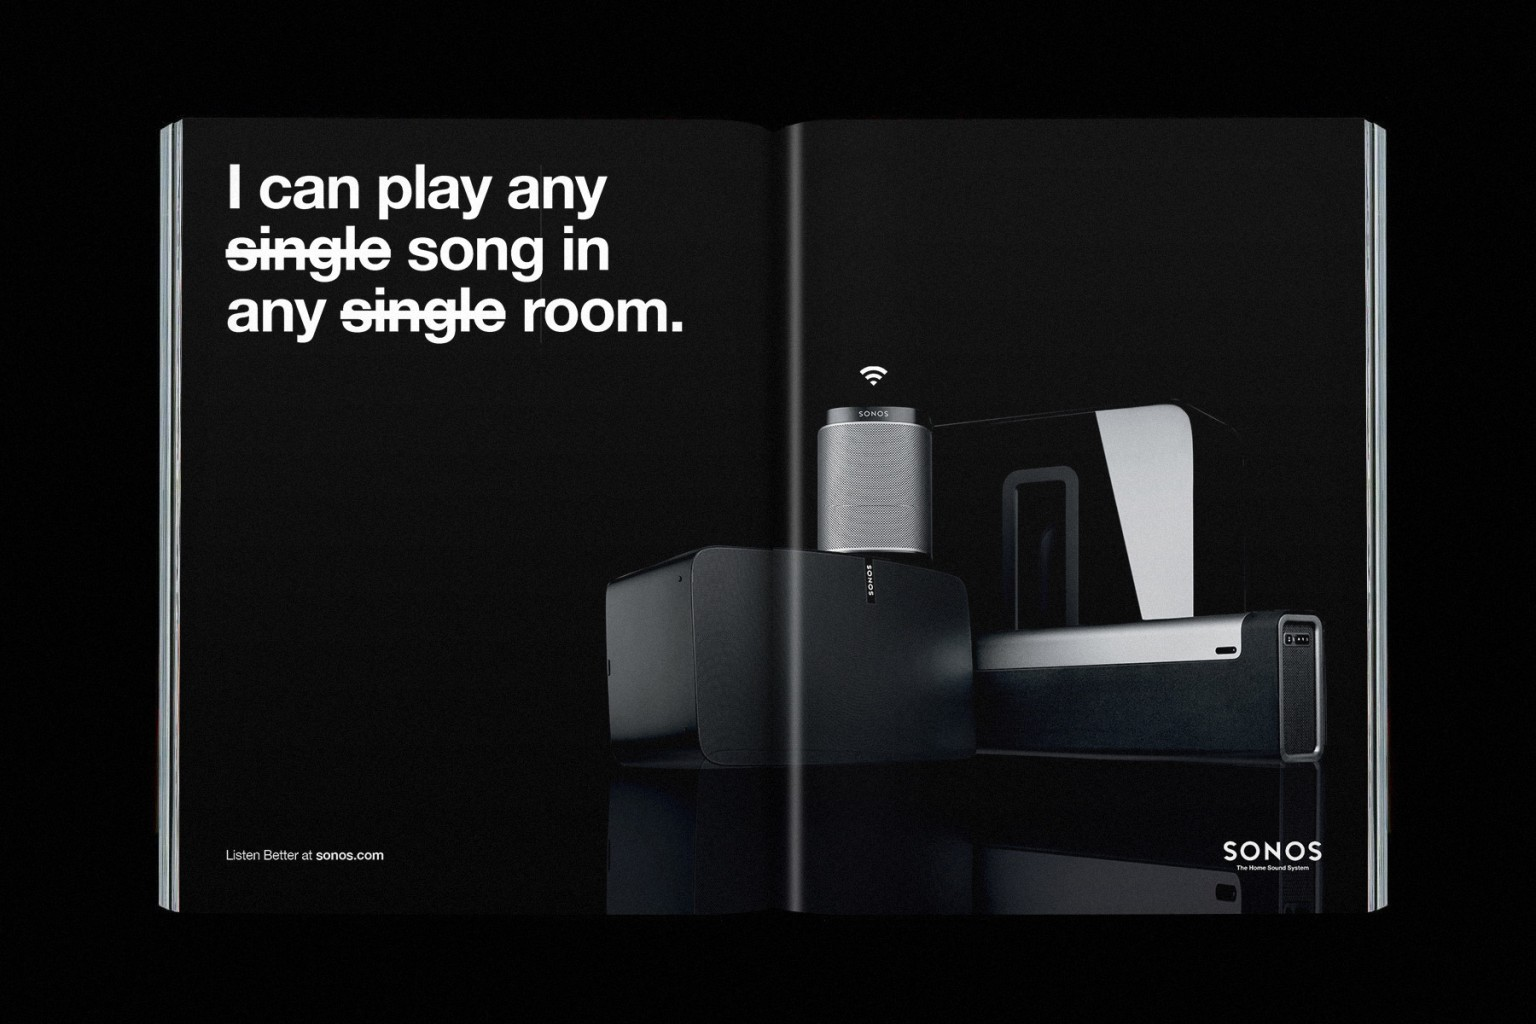 SONOS Wake Up the Silent Home